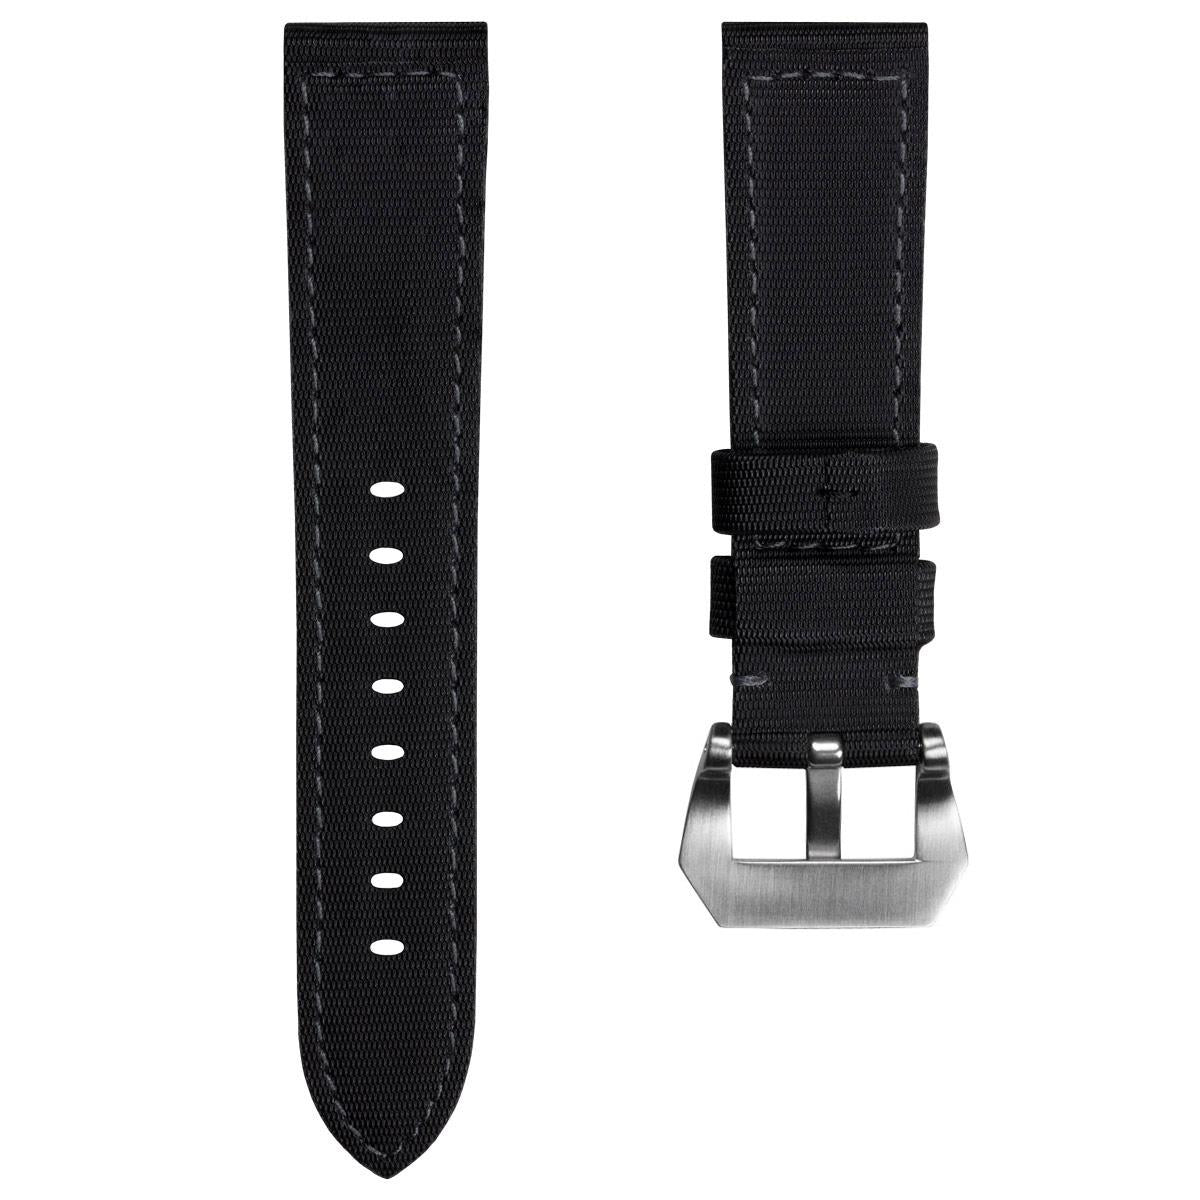 The Helford By ZULUDIVER Sailcloth Waterproof Watch Strap